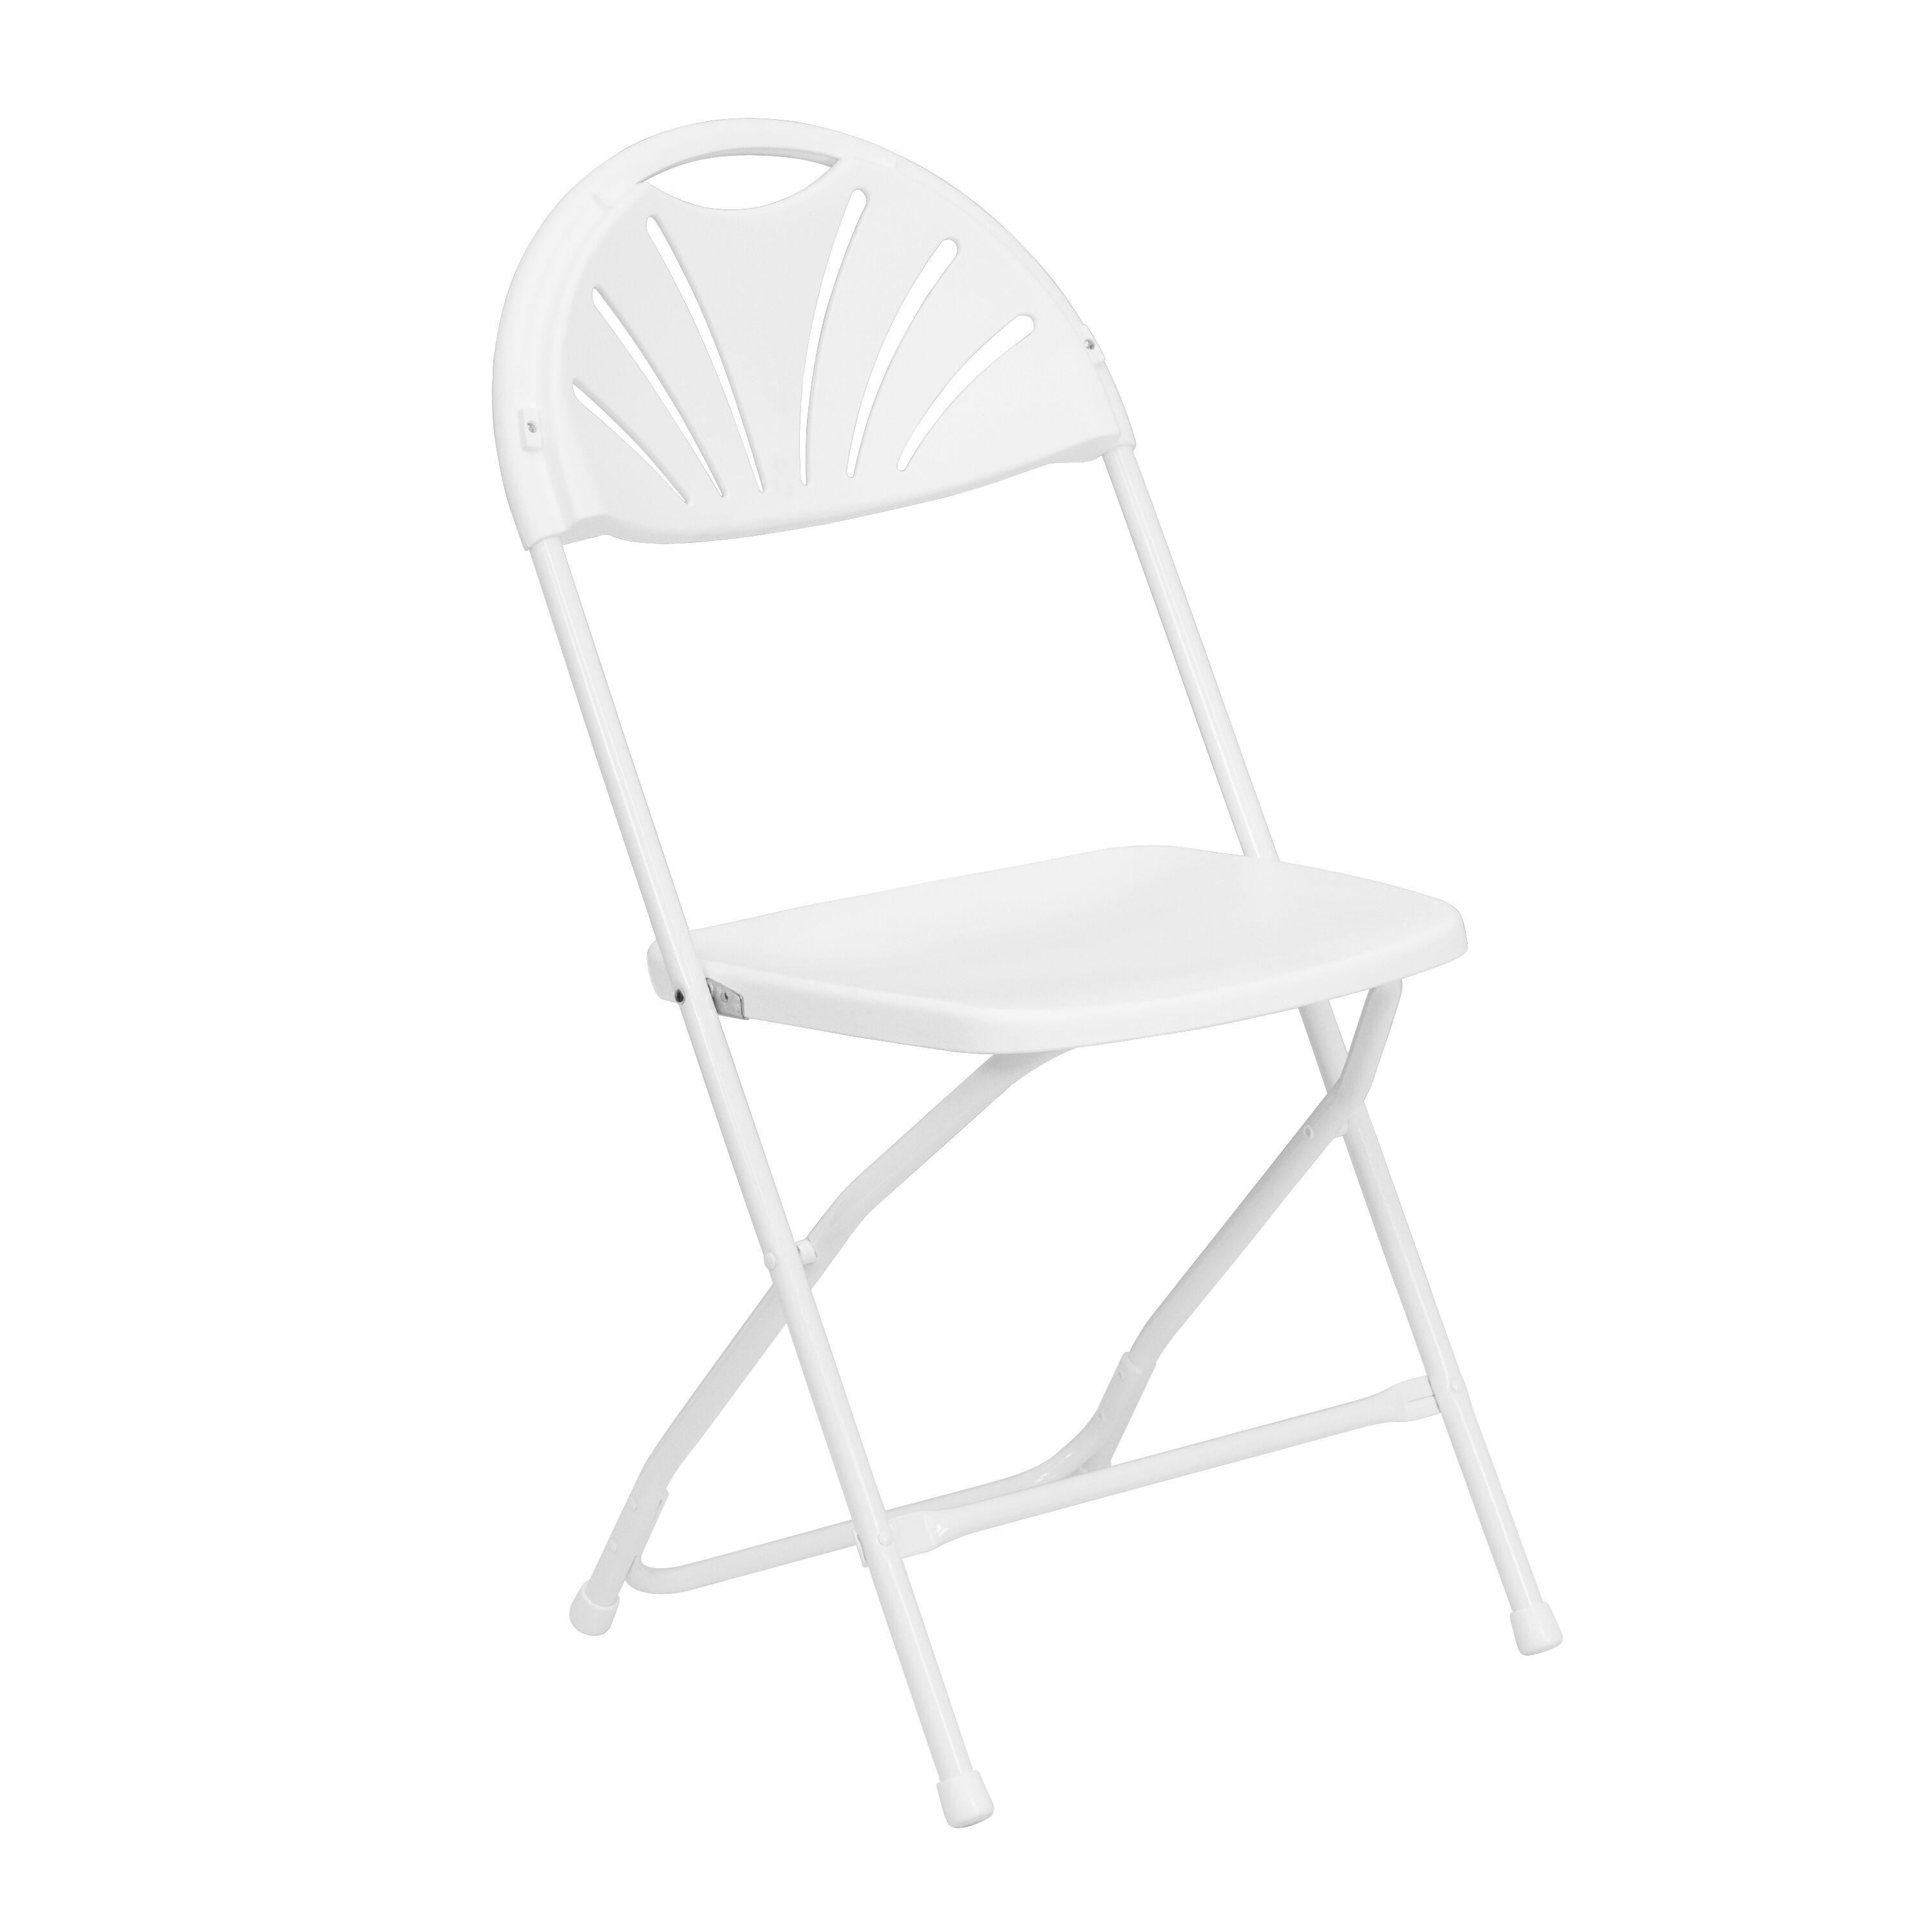 chairs 4 less chair cover hire lincoln white plastic folding le l gg